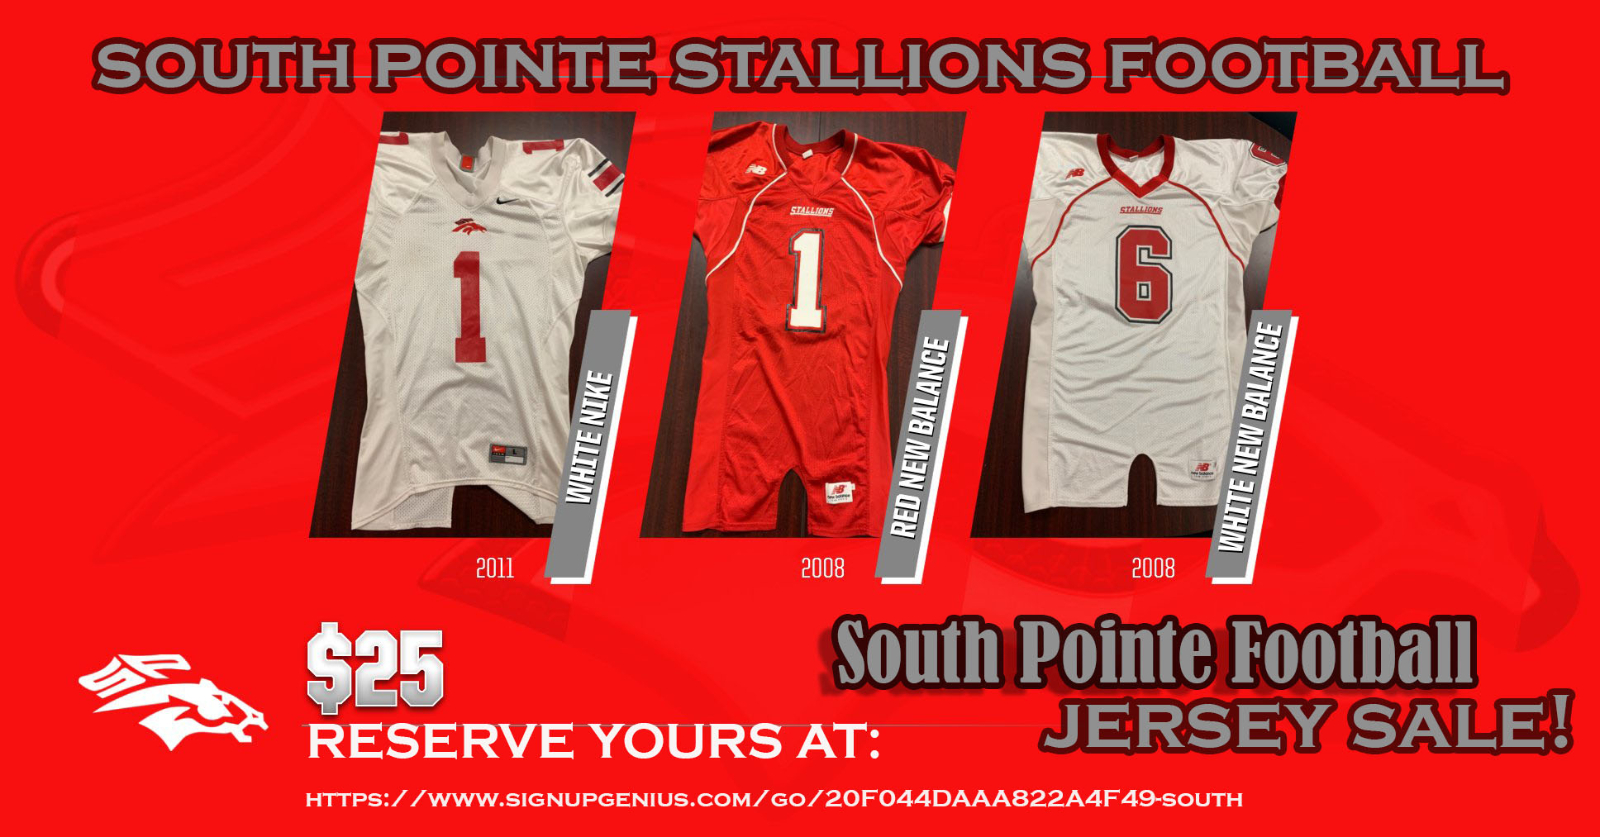 Stallions Football Jersey Sale – now through August 14th